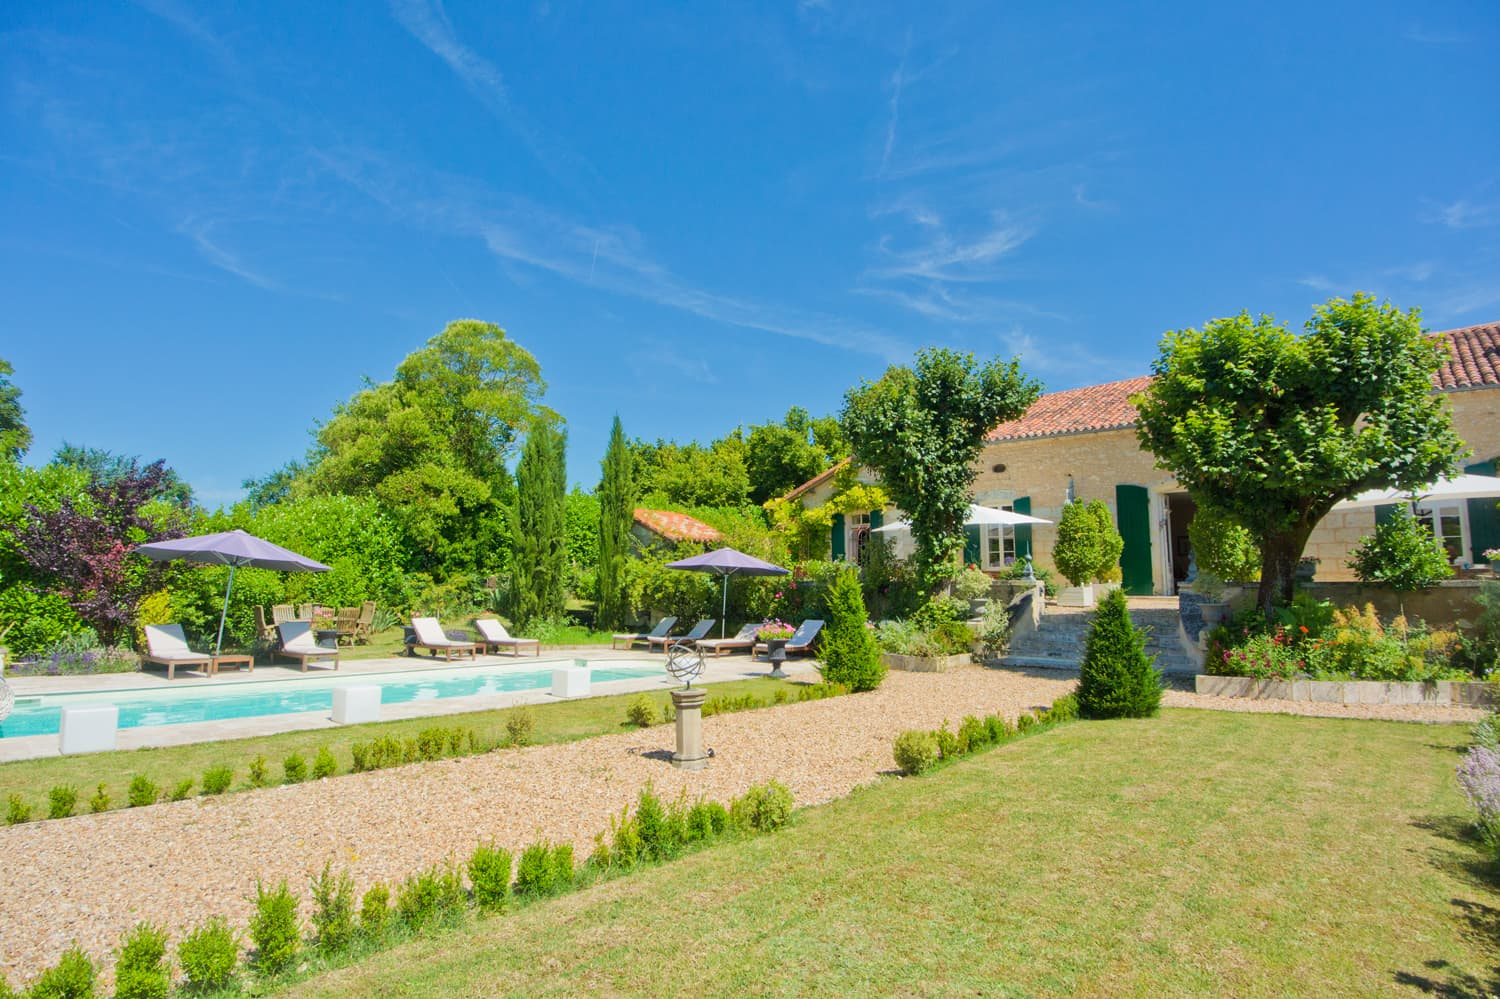 Holiday rental home in Dordogne with private pool